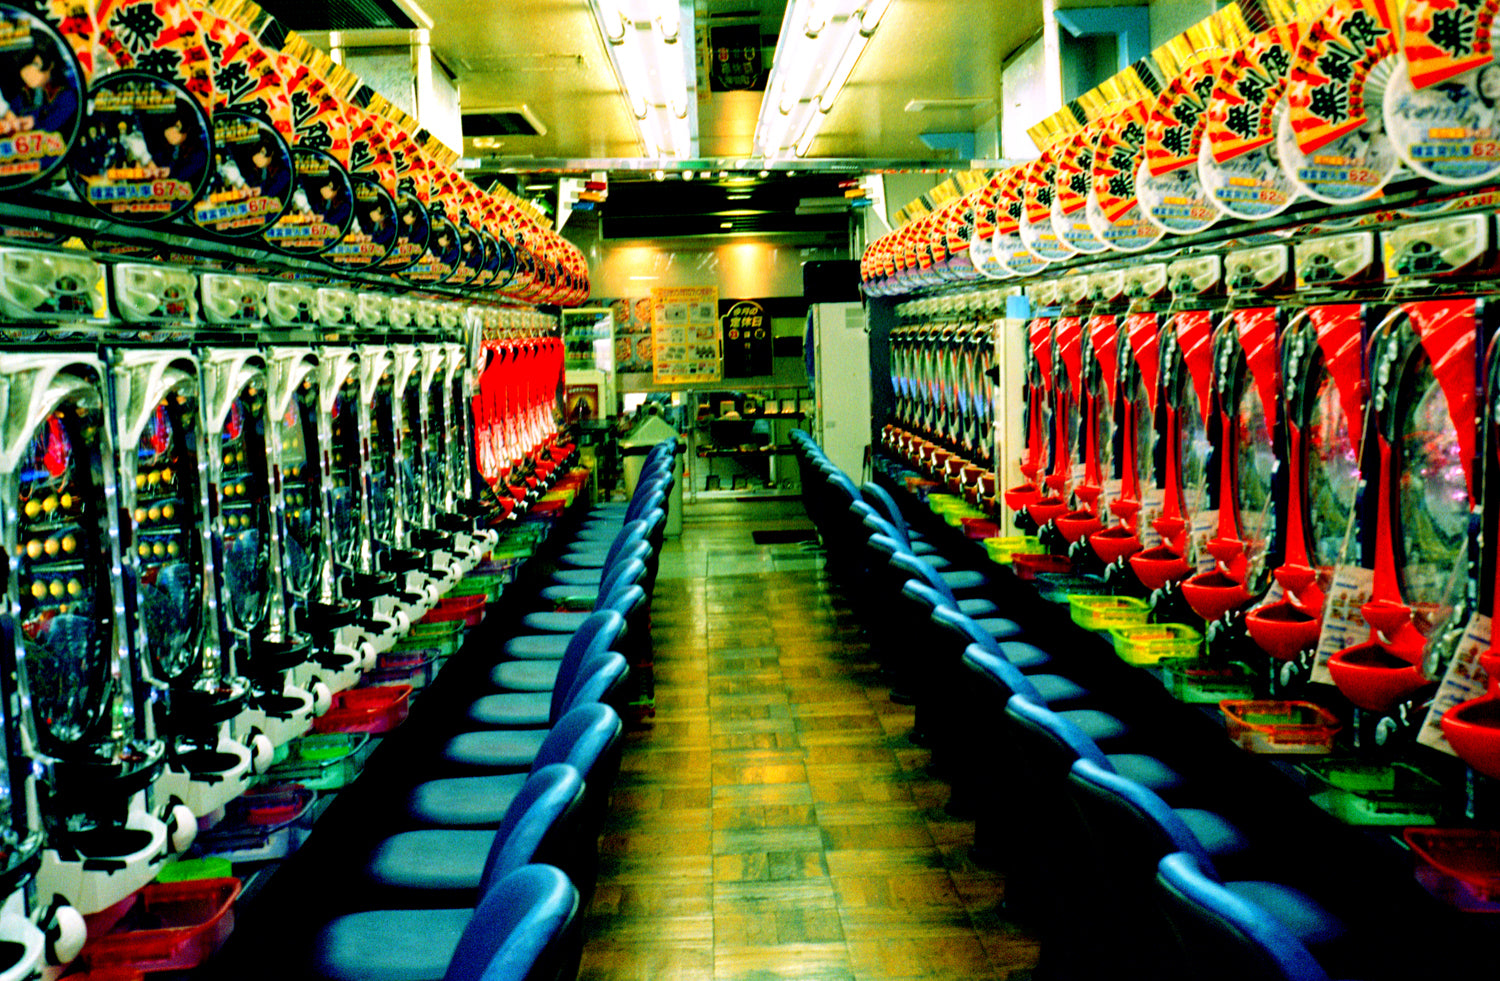 A pinball arcade in Tokyo Japan. Red, green & yellow neon lights shine.